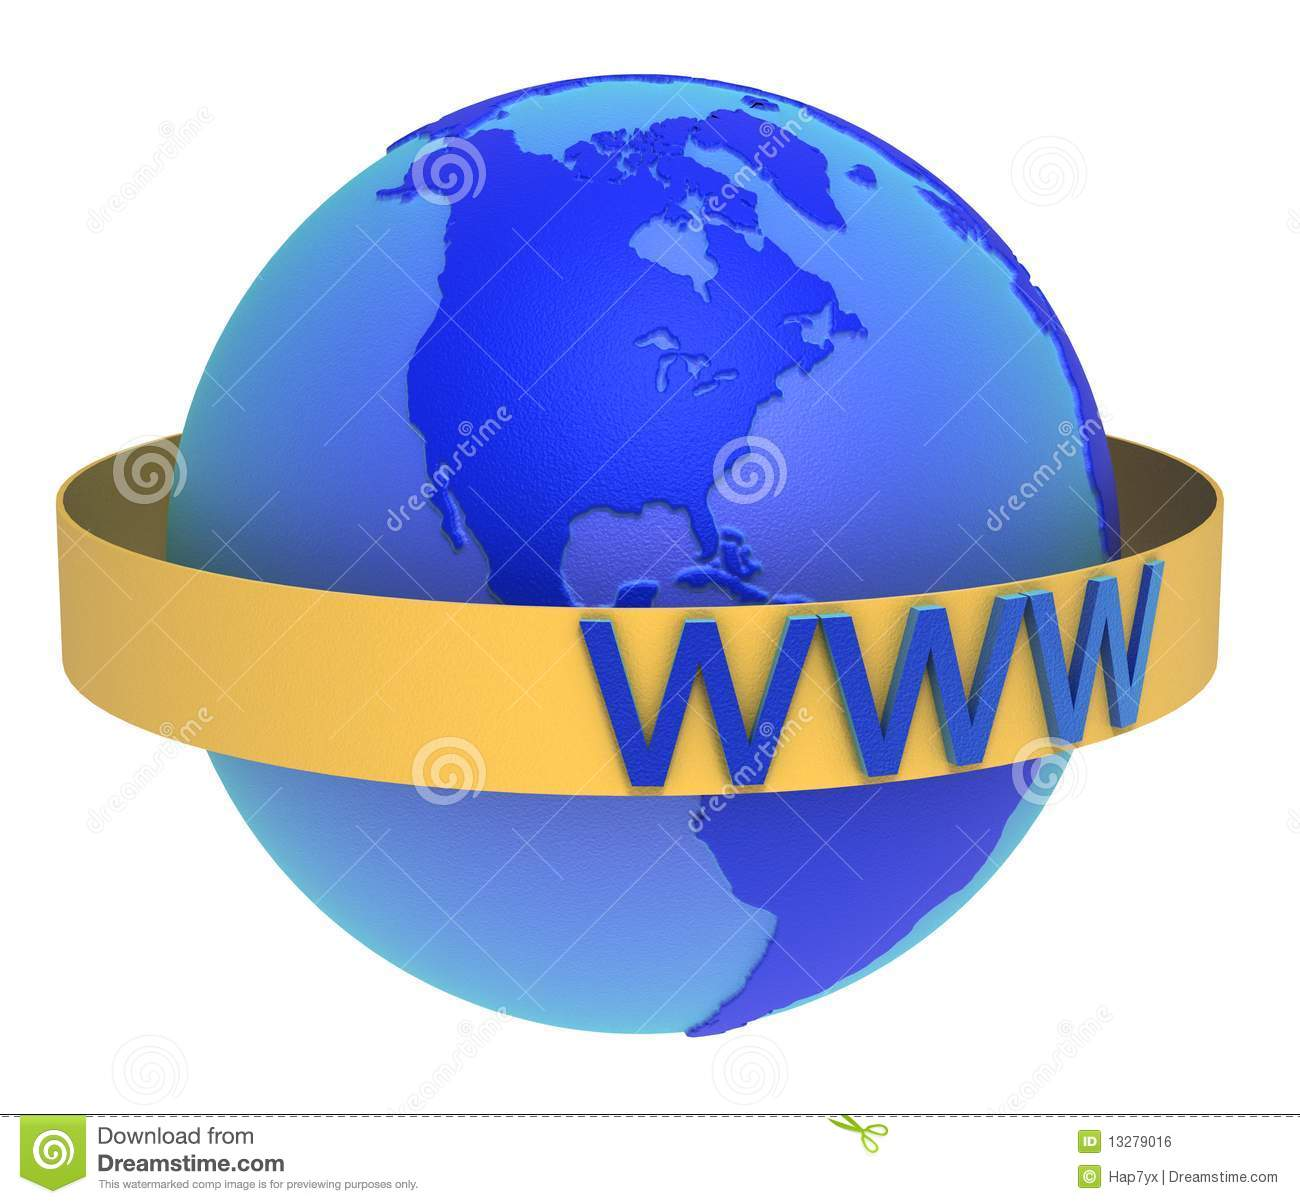 World Wide Web and HTMLTools